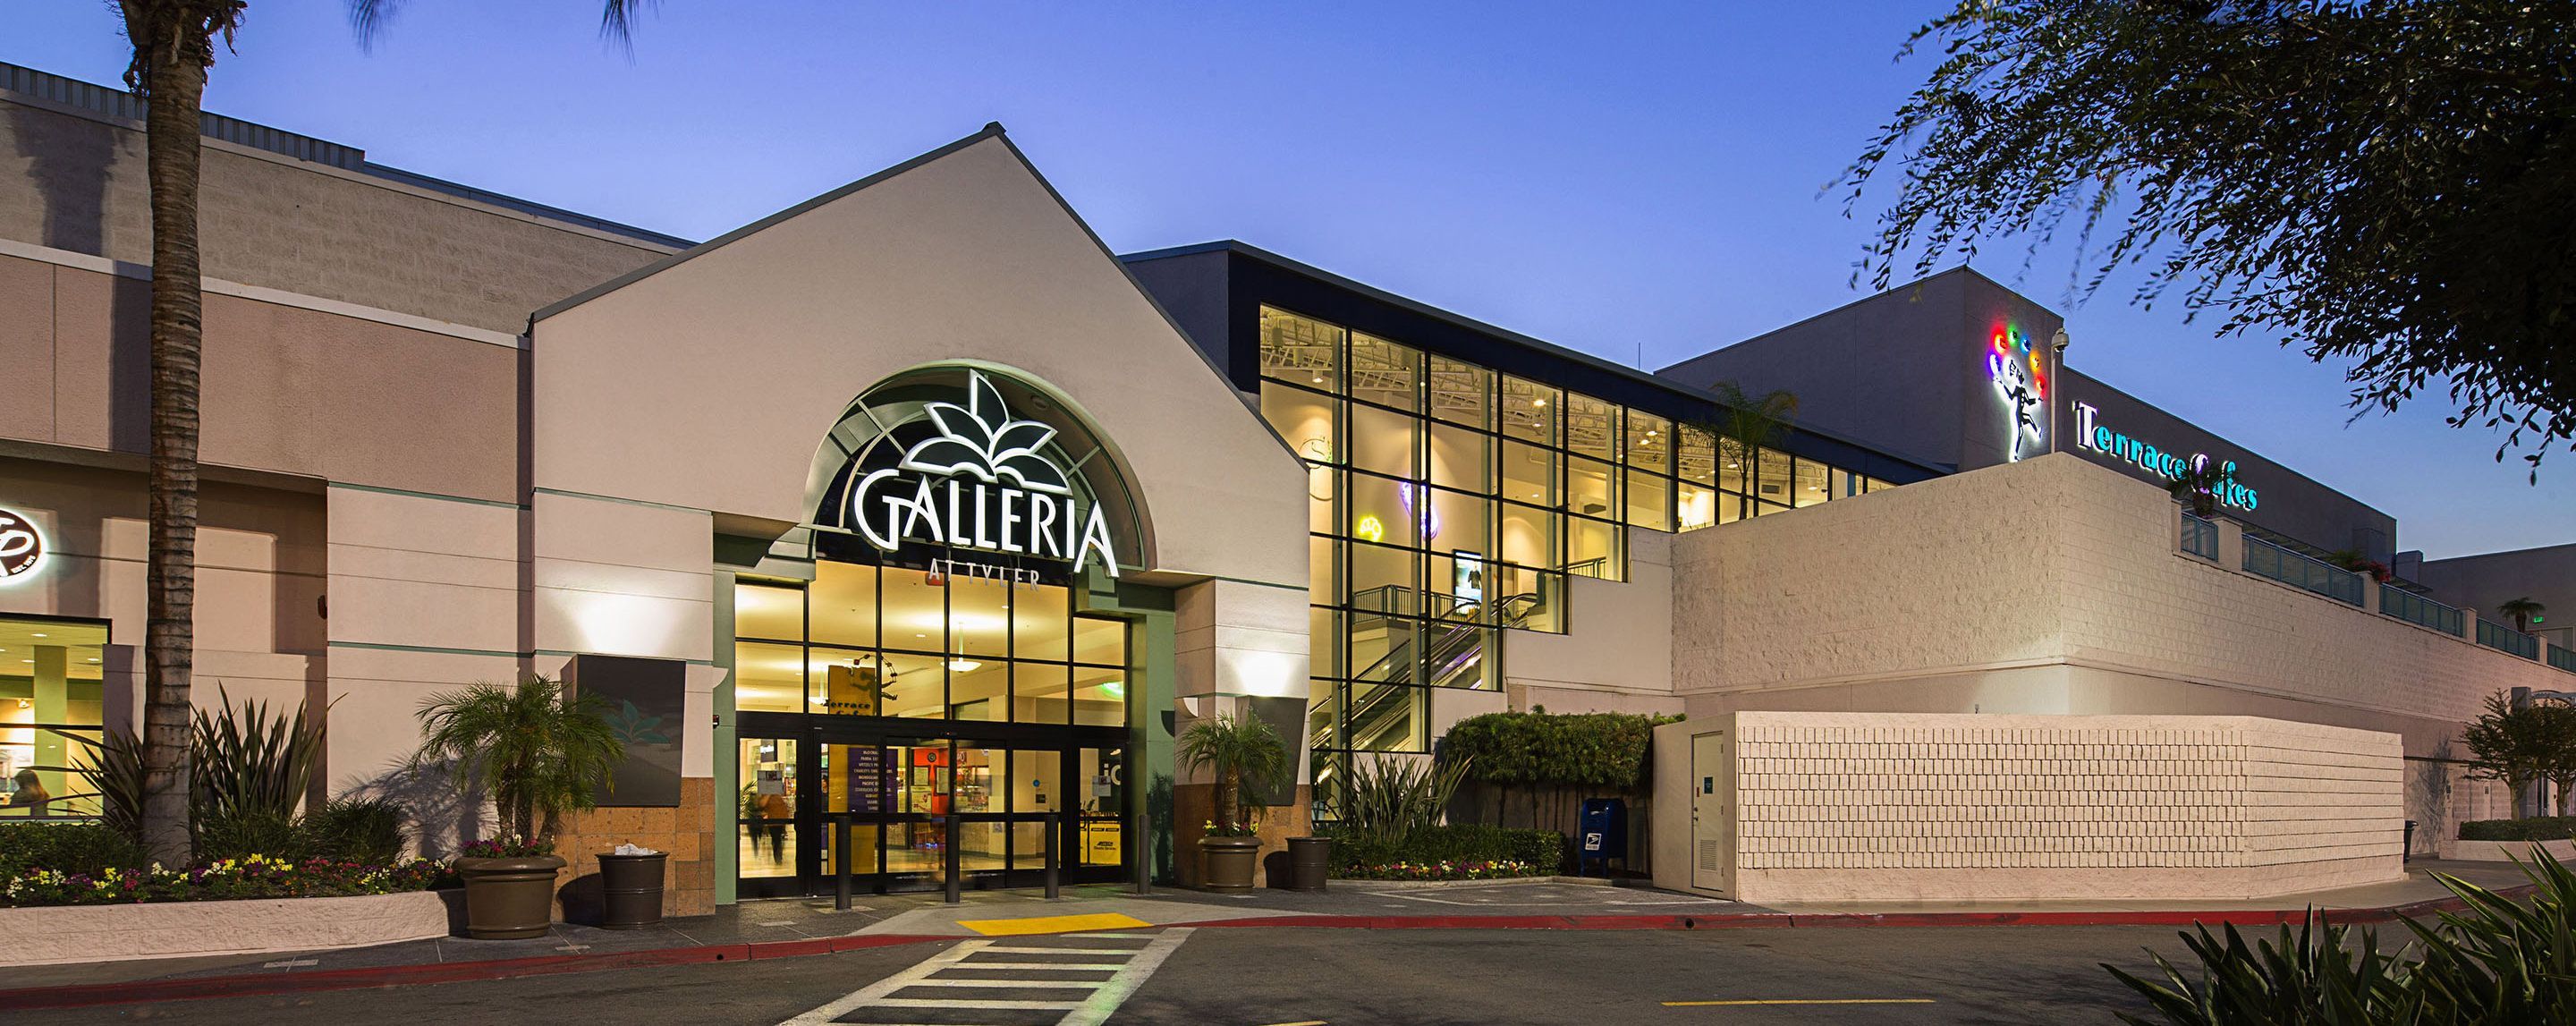 Northeastern entrance to the Galleria at Tyler shopping mall in Riverside California